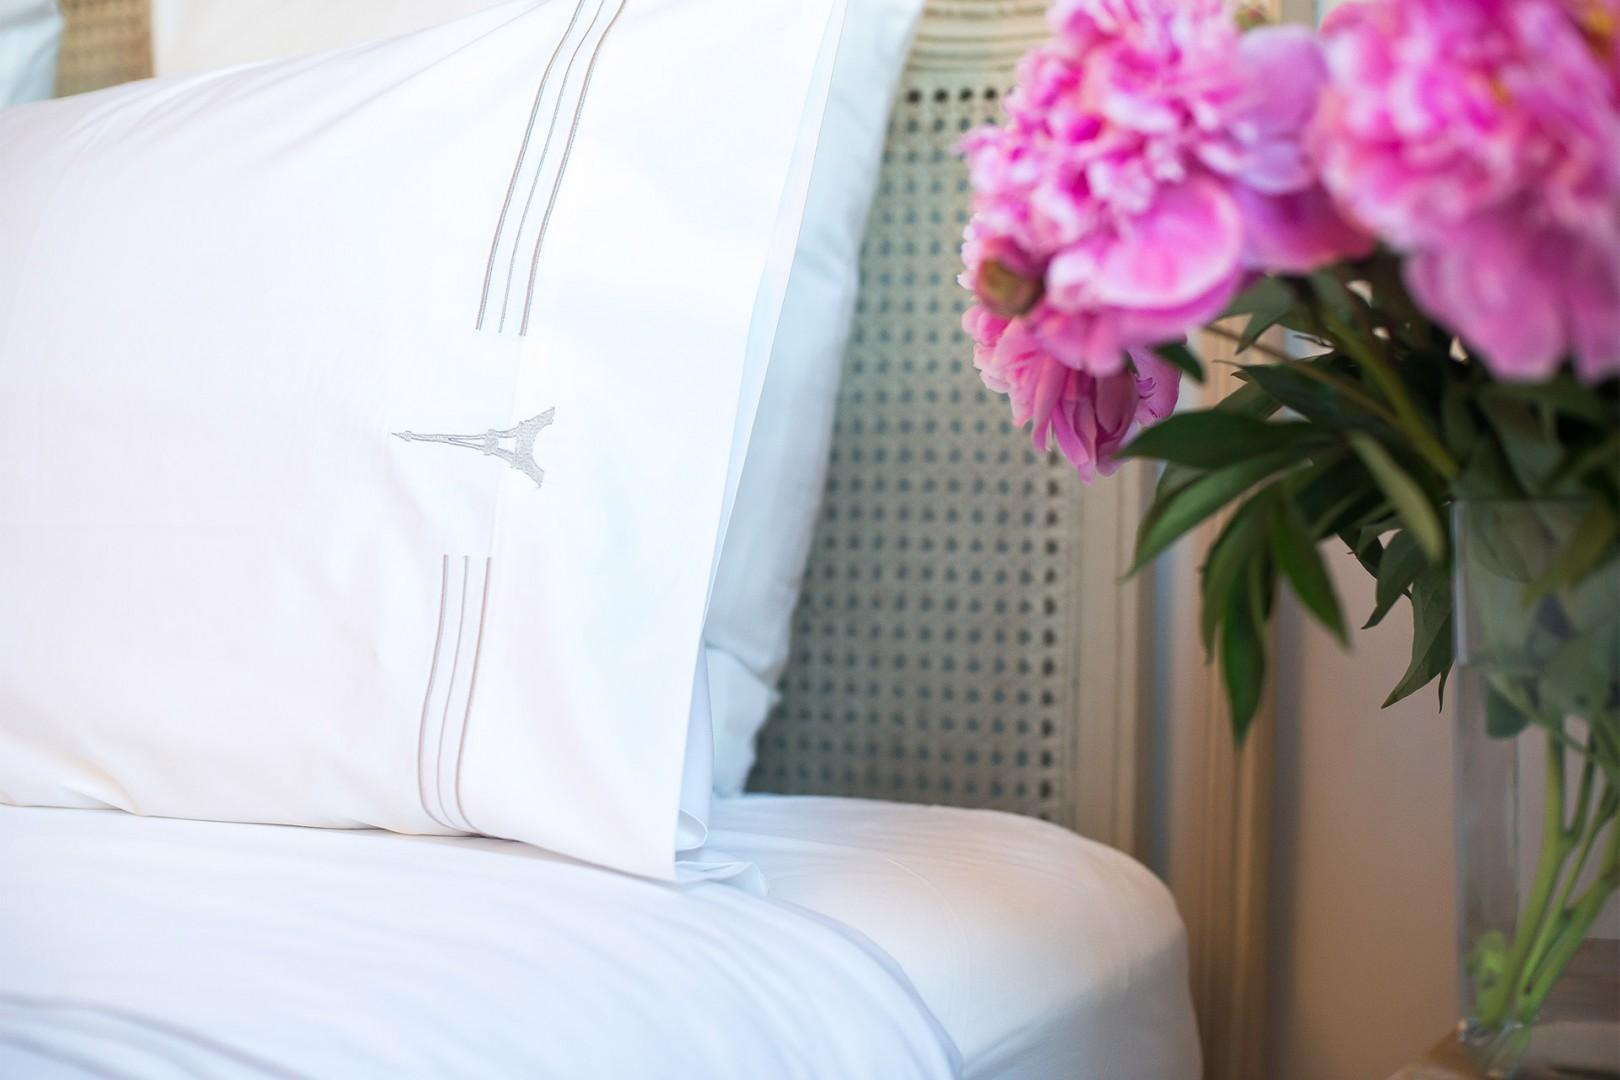 Sumptuous linens are on all the beds.